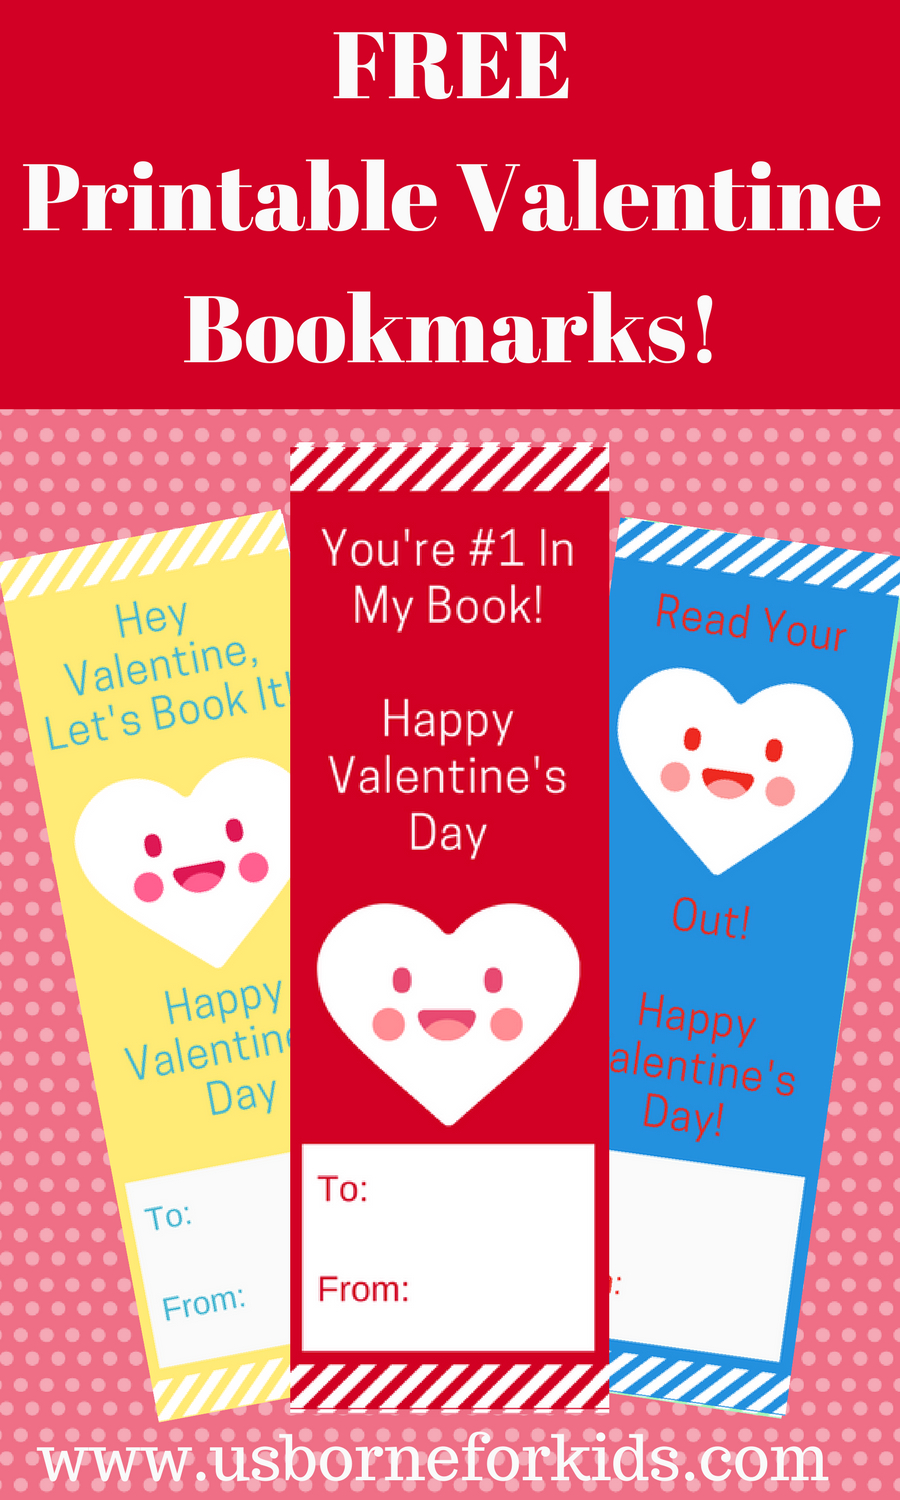 Valentine Bookmarks For Your Child's Class! Mix And Match 6 - Free Printable Valentine Bookmarks